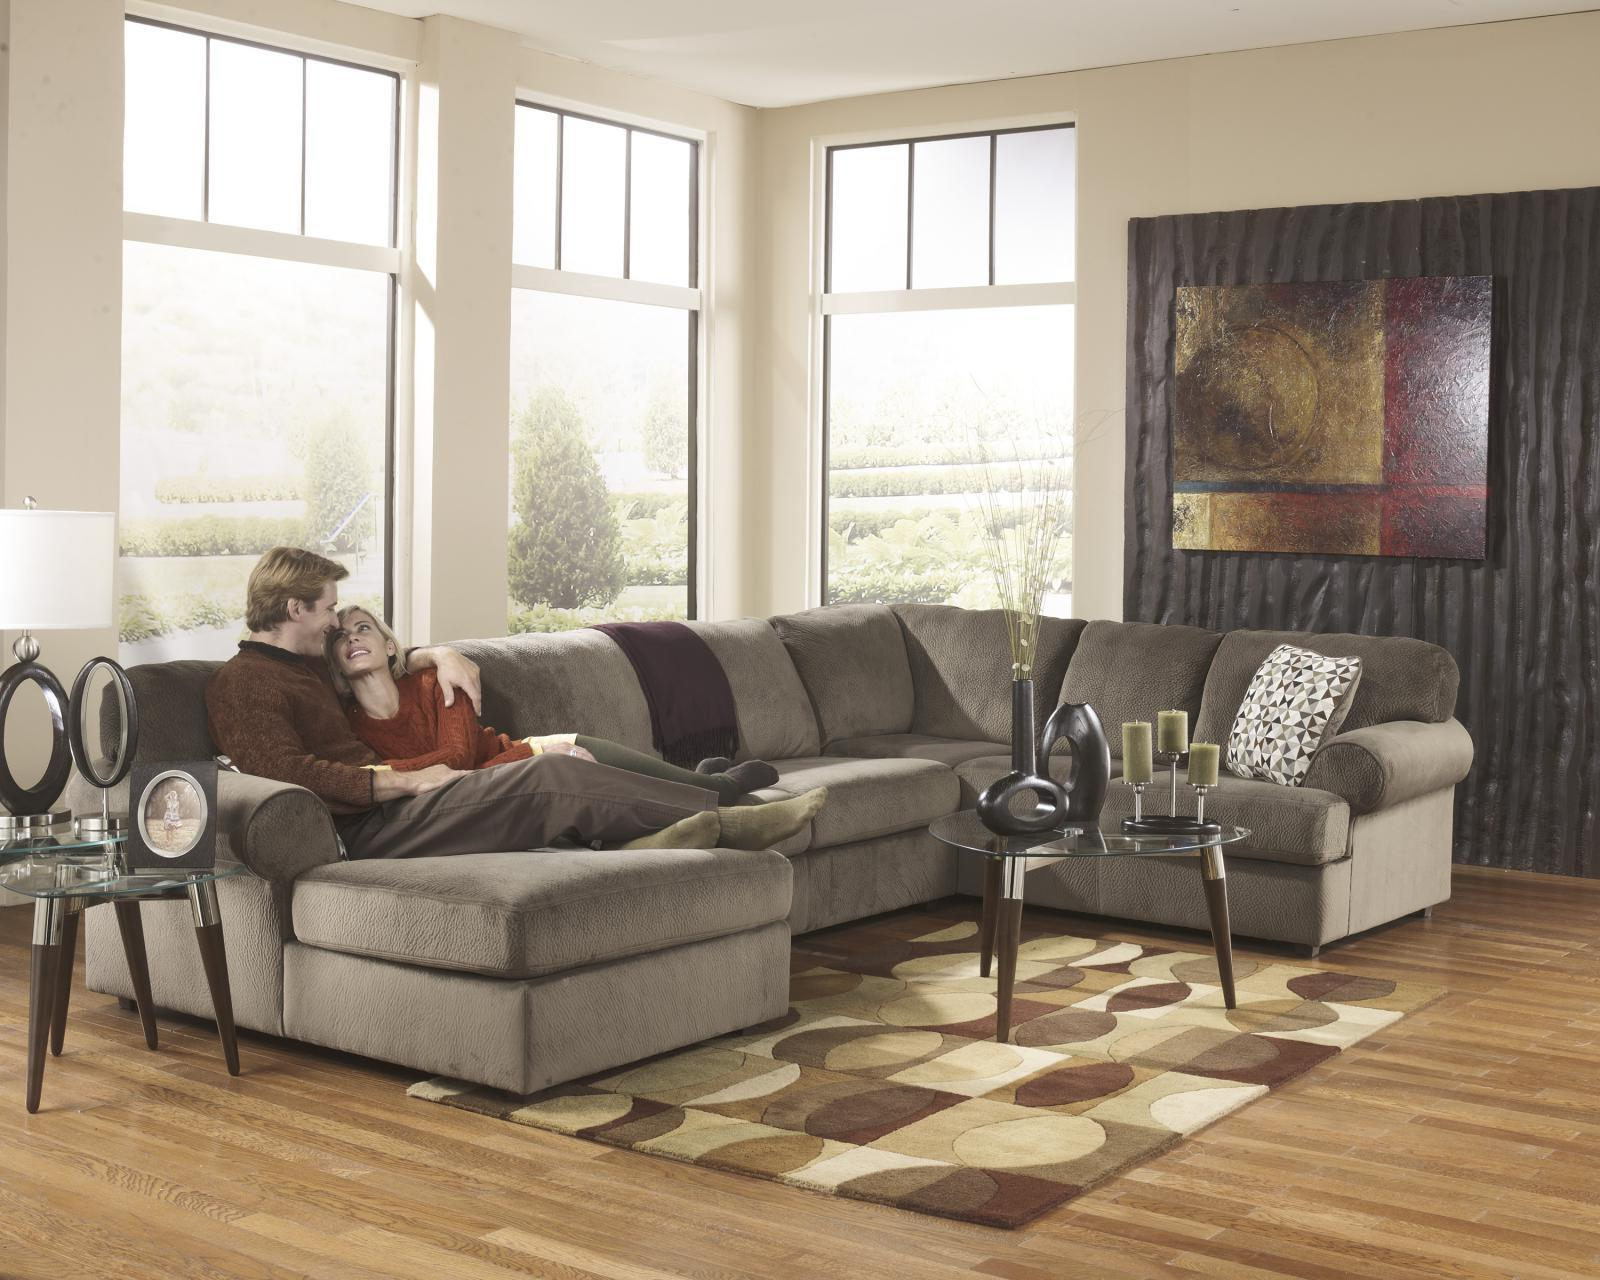 Ashley Jessa Place Living Room Sectional 3pcs in Dune Contemporary Left Facing